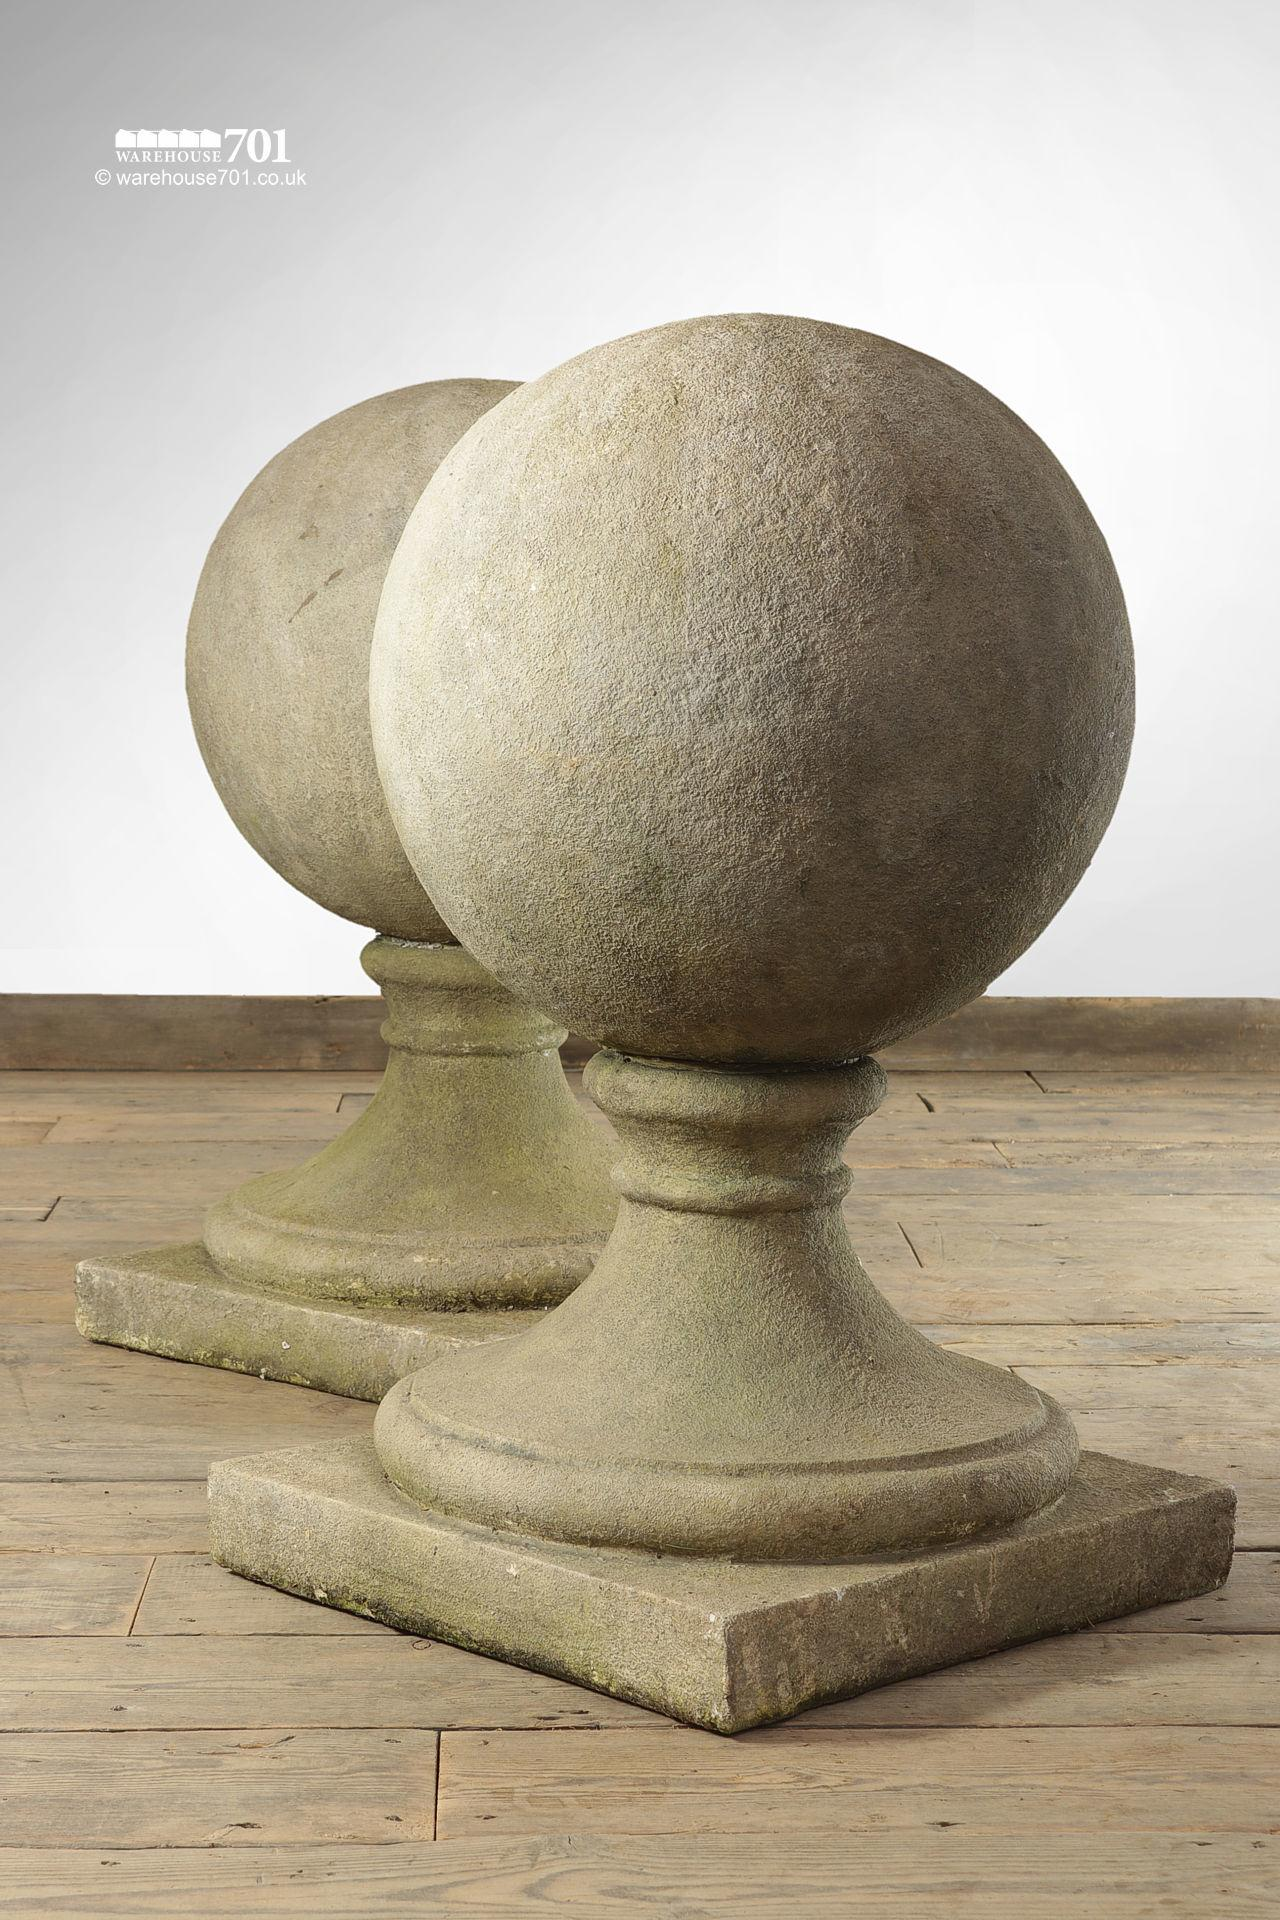 Impressive Pair of Large Stone Spheres or Ball Pier Caps with Decorative Bases